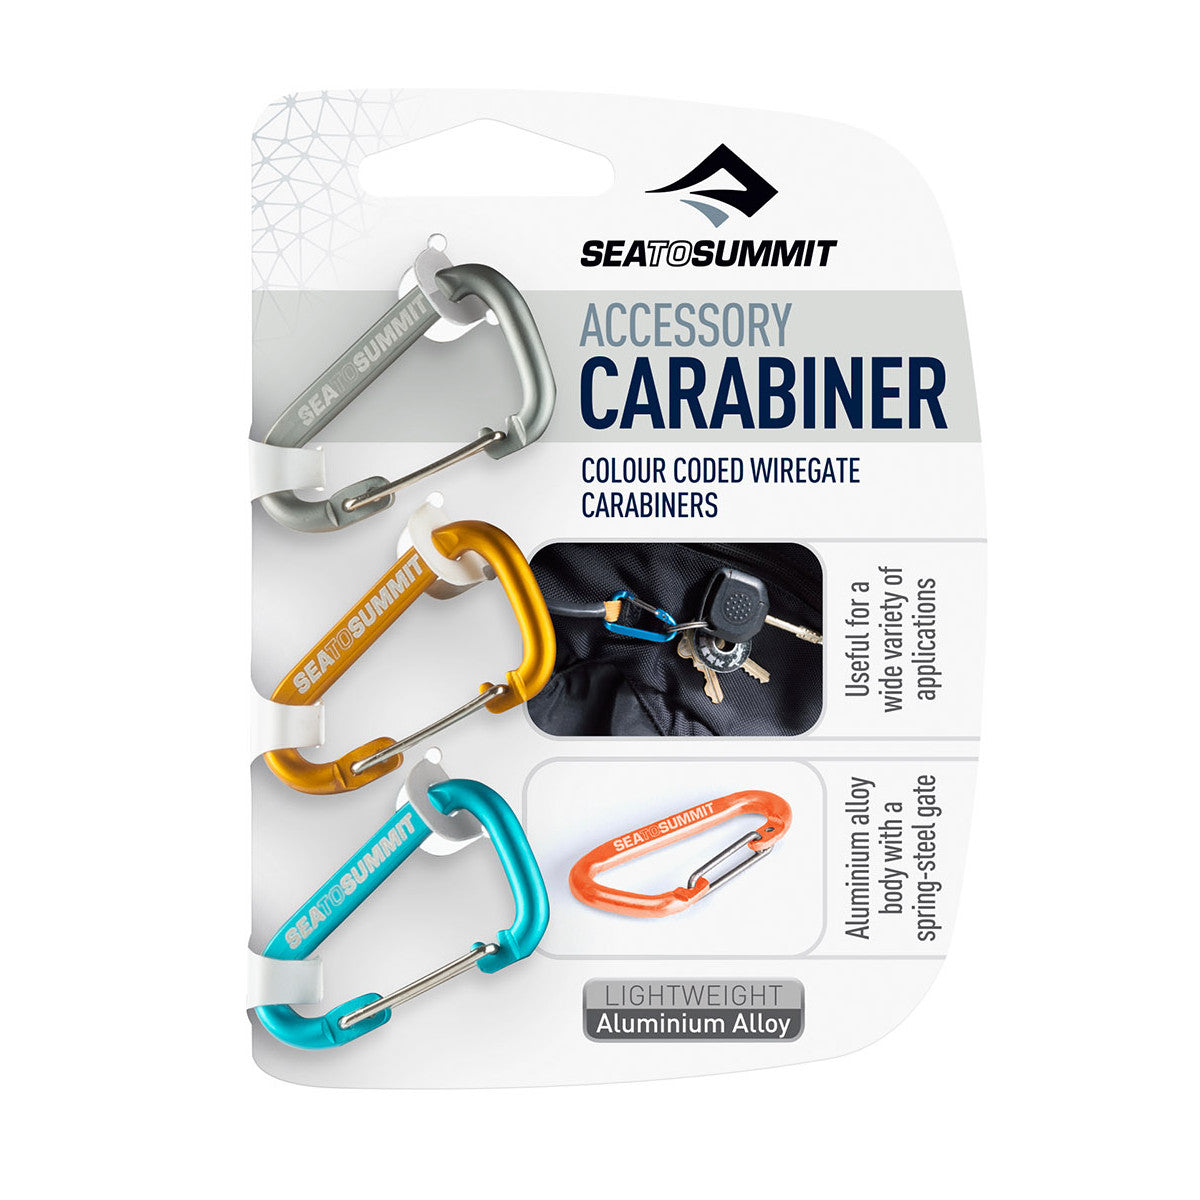 The Sea to Summit Accessory Carabiners are perfect for keeping keys together, attaching things to your pack, hanging a lantern in your tent, and many other uses.